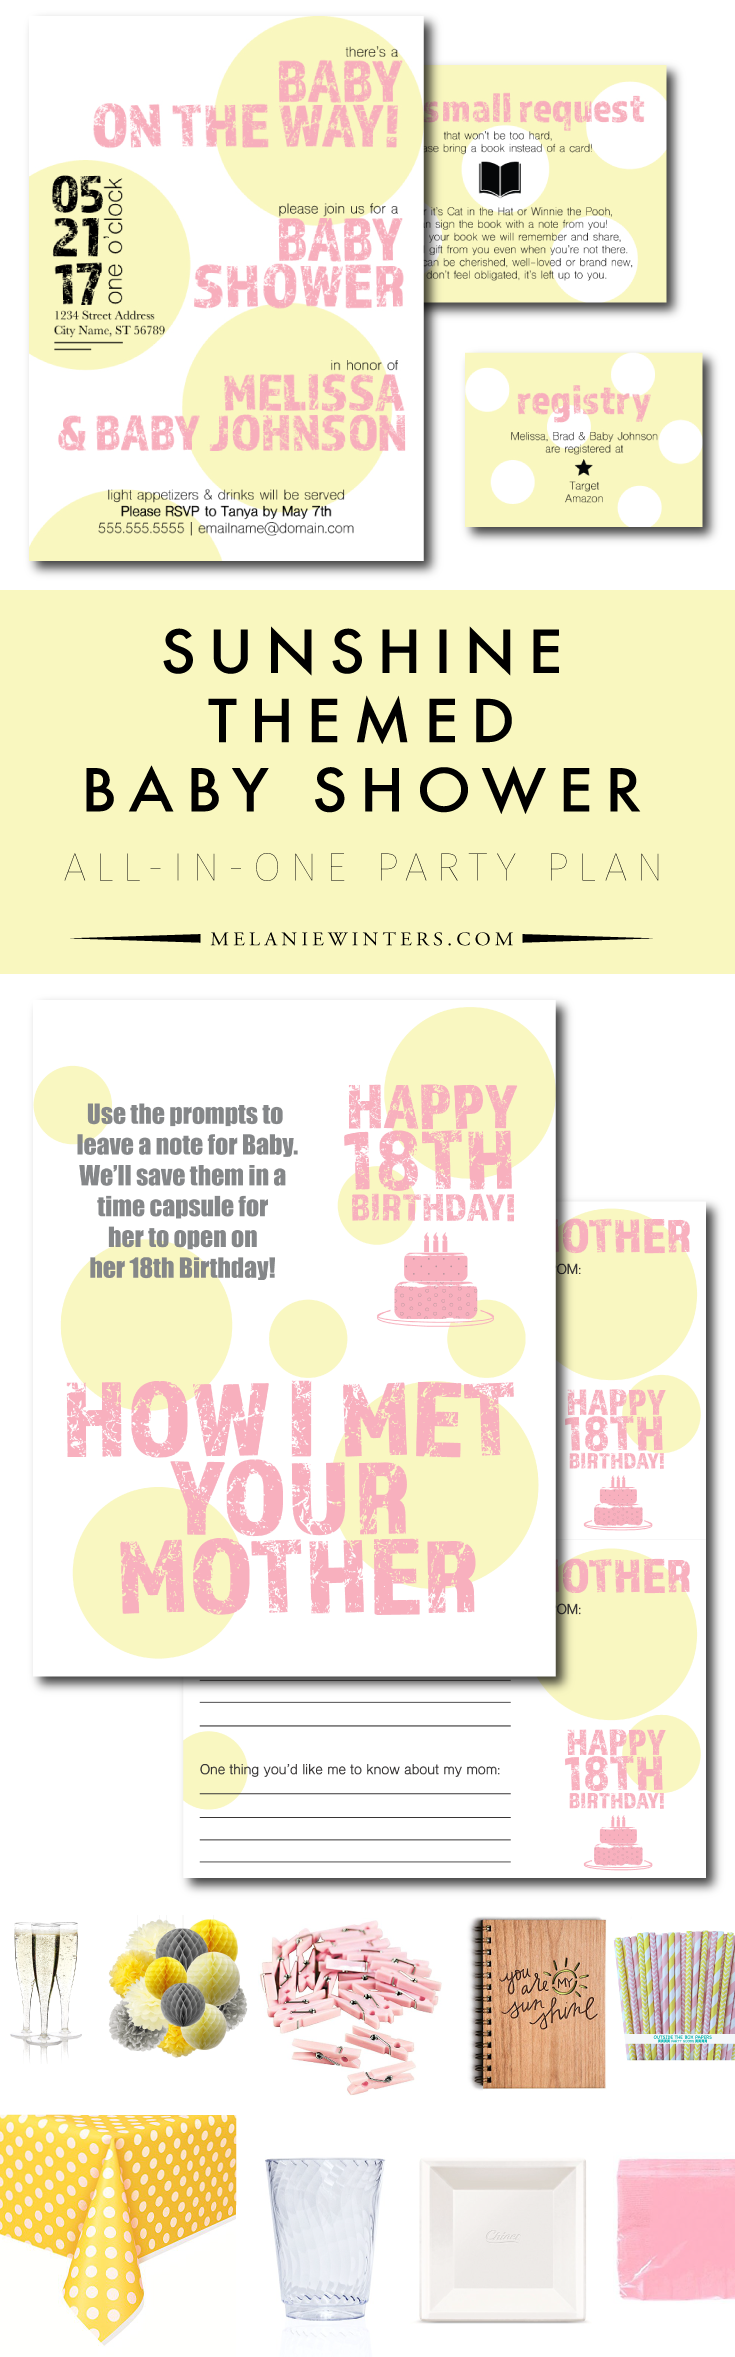 From invites and activities to food and decor ideas, the heavy lifting is done for you! We've put together some of our favorite sunshine themed baby shower decor, fabulous invitations and even some of our favorite party food recipe links so you finally have a one stop shop to get your party planning done in no time.